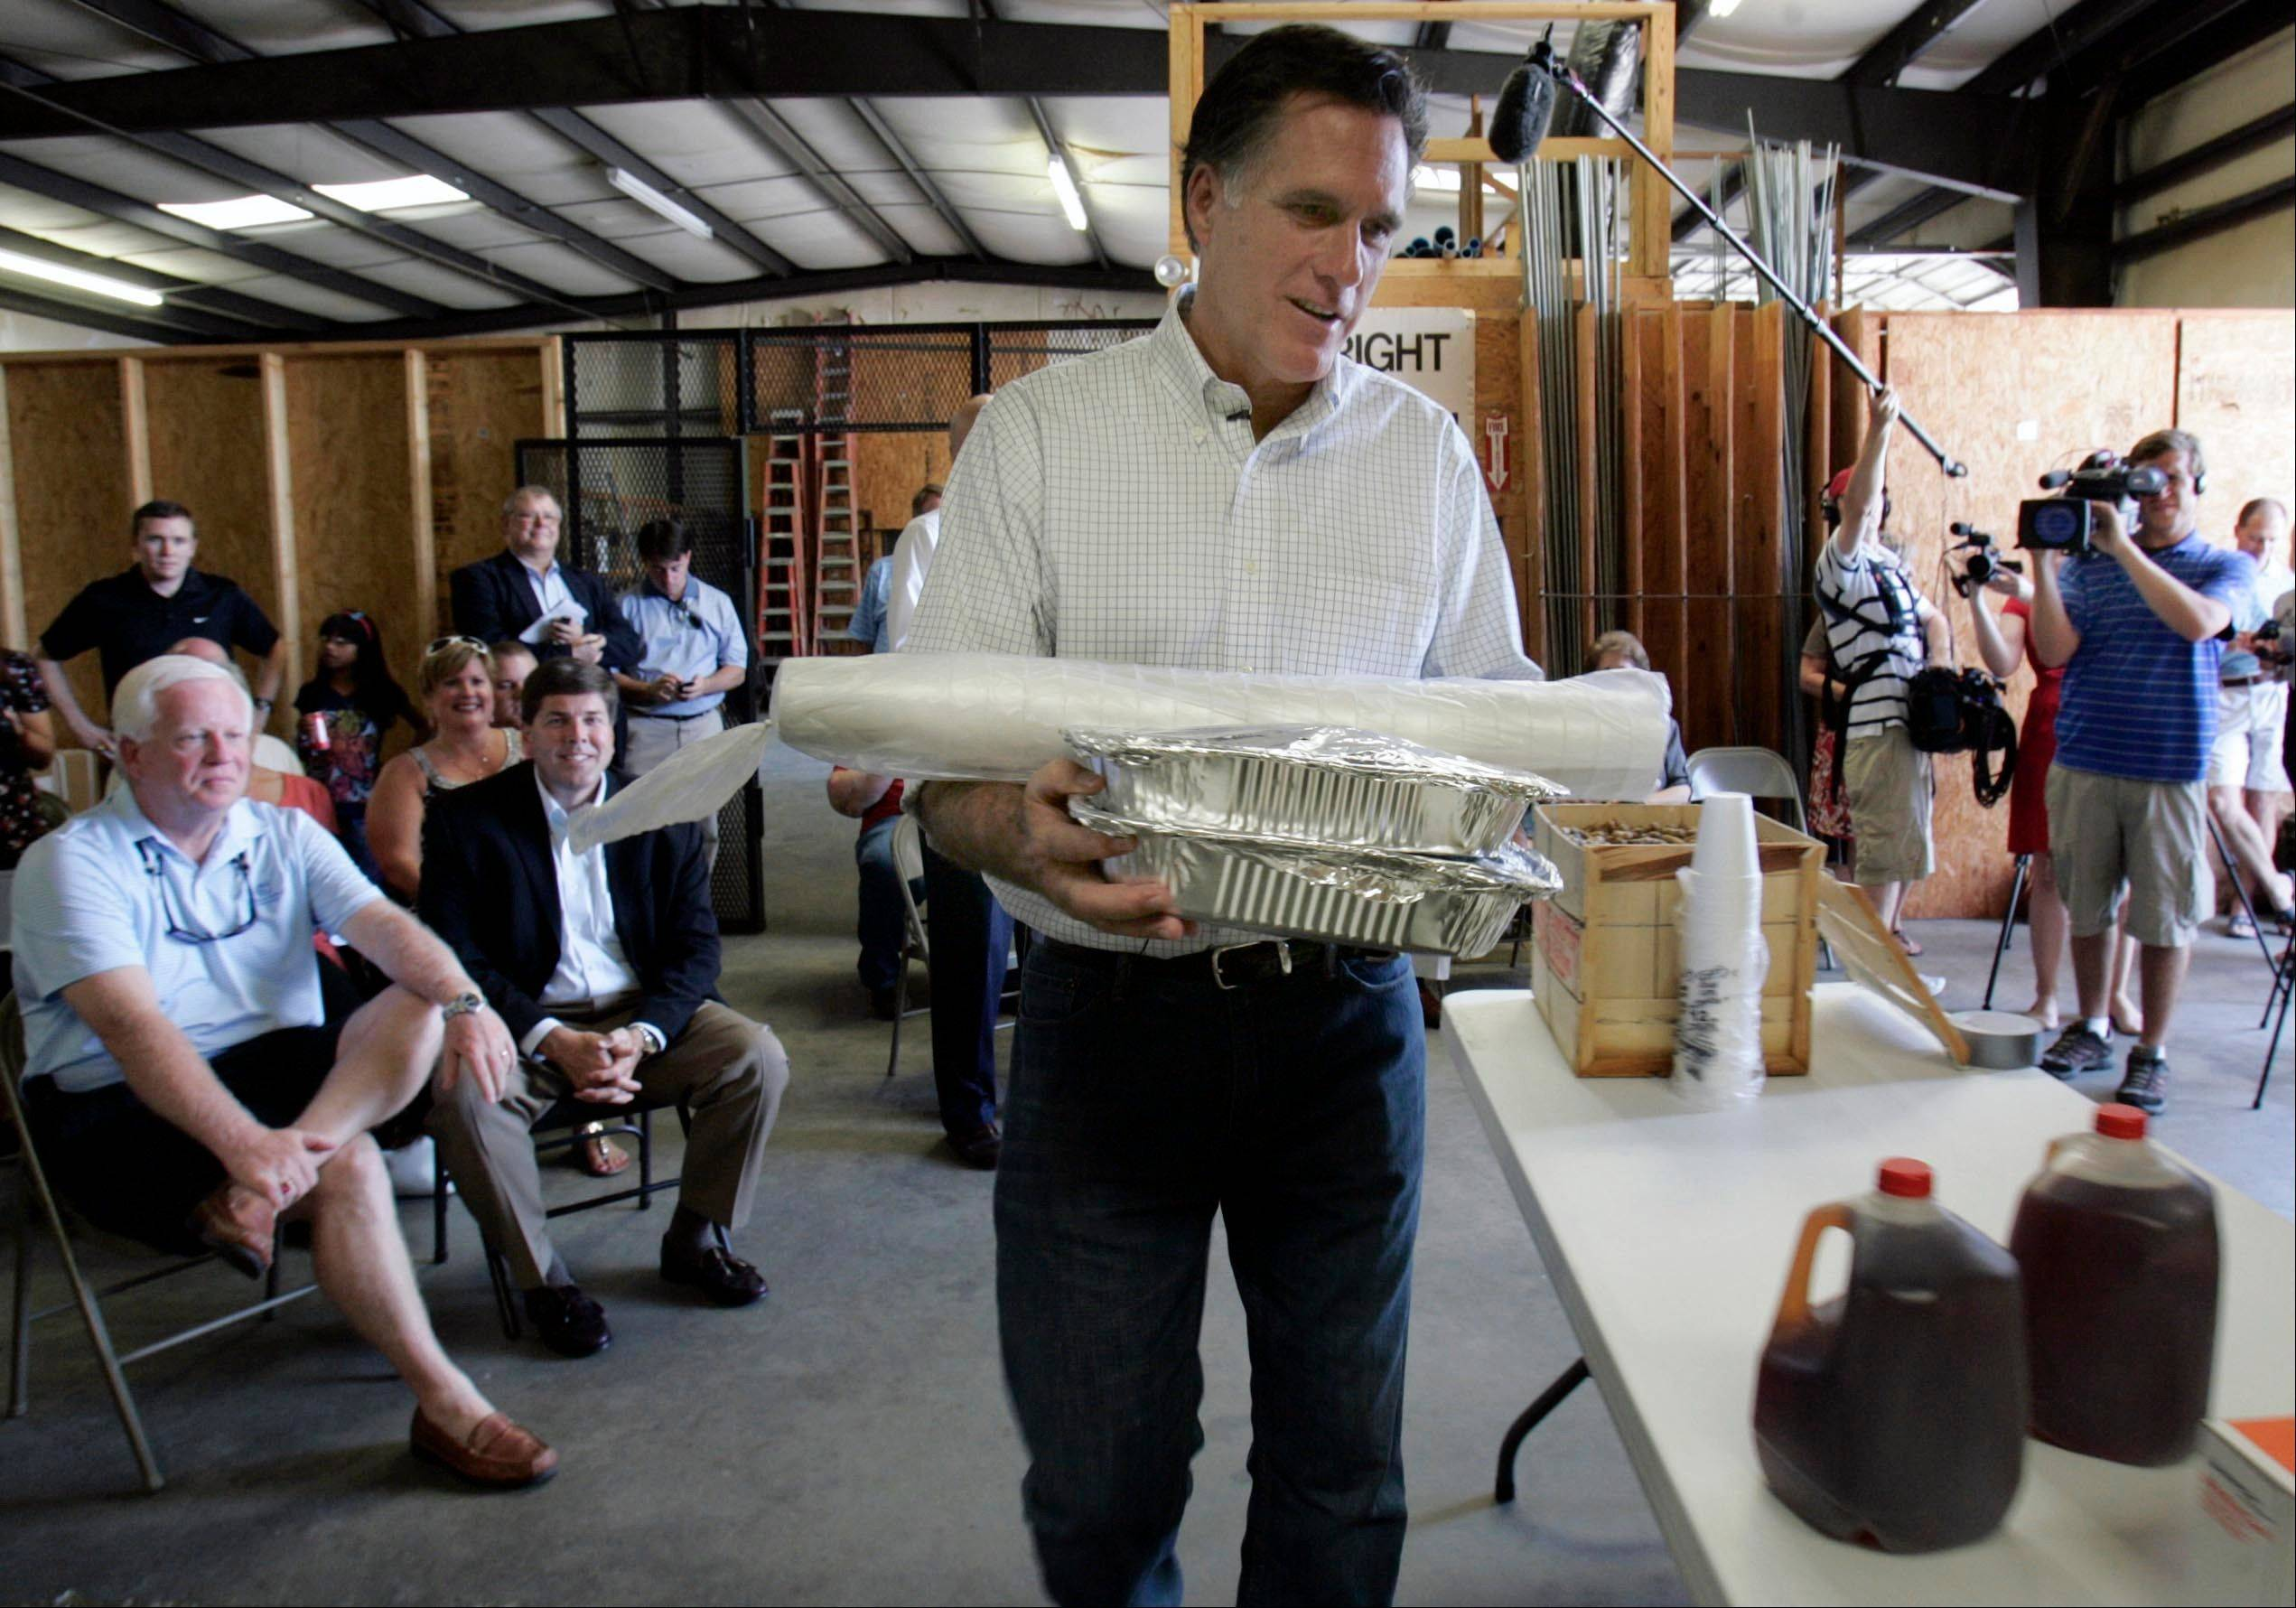 Mitt Romney arrives with lunch to speak with a group of small business owners on the economy during a visit to Meetze plumbing in Irmo, S.C. In an election year when the economy and small business have combined to form a huge campaign issue, advocacy groups like the Small Business & Entrepreneurship Council step up their own campaigns on behalf of the company owners they represent.